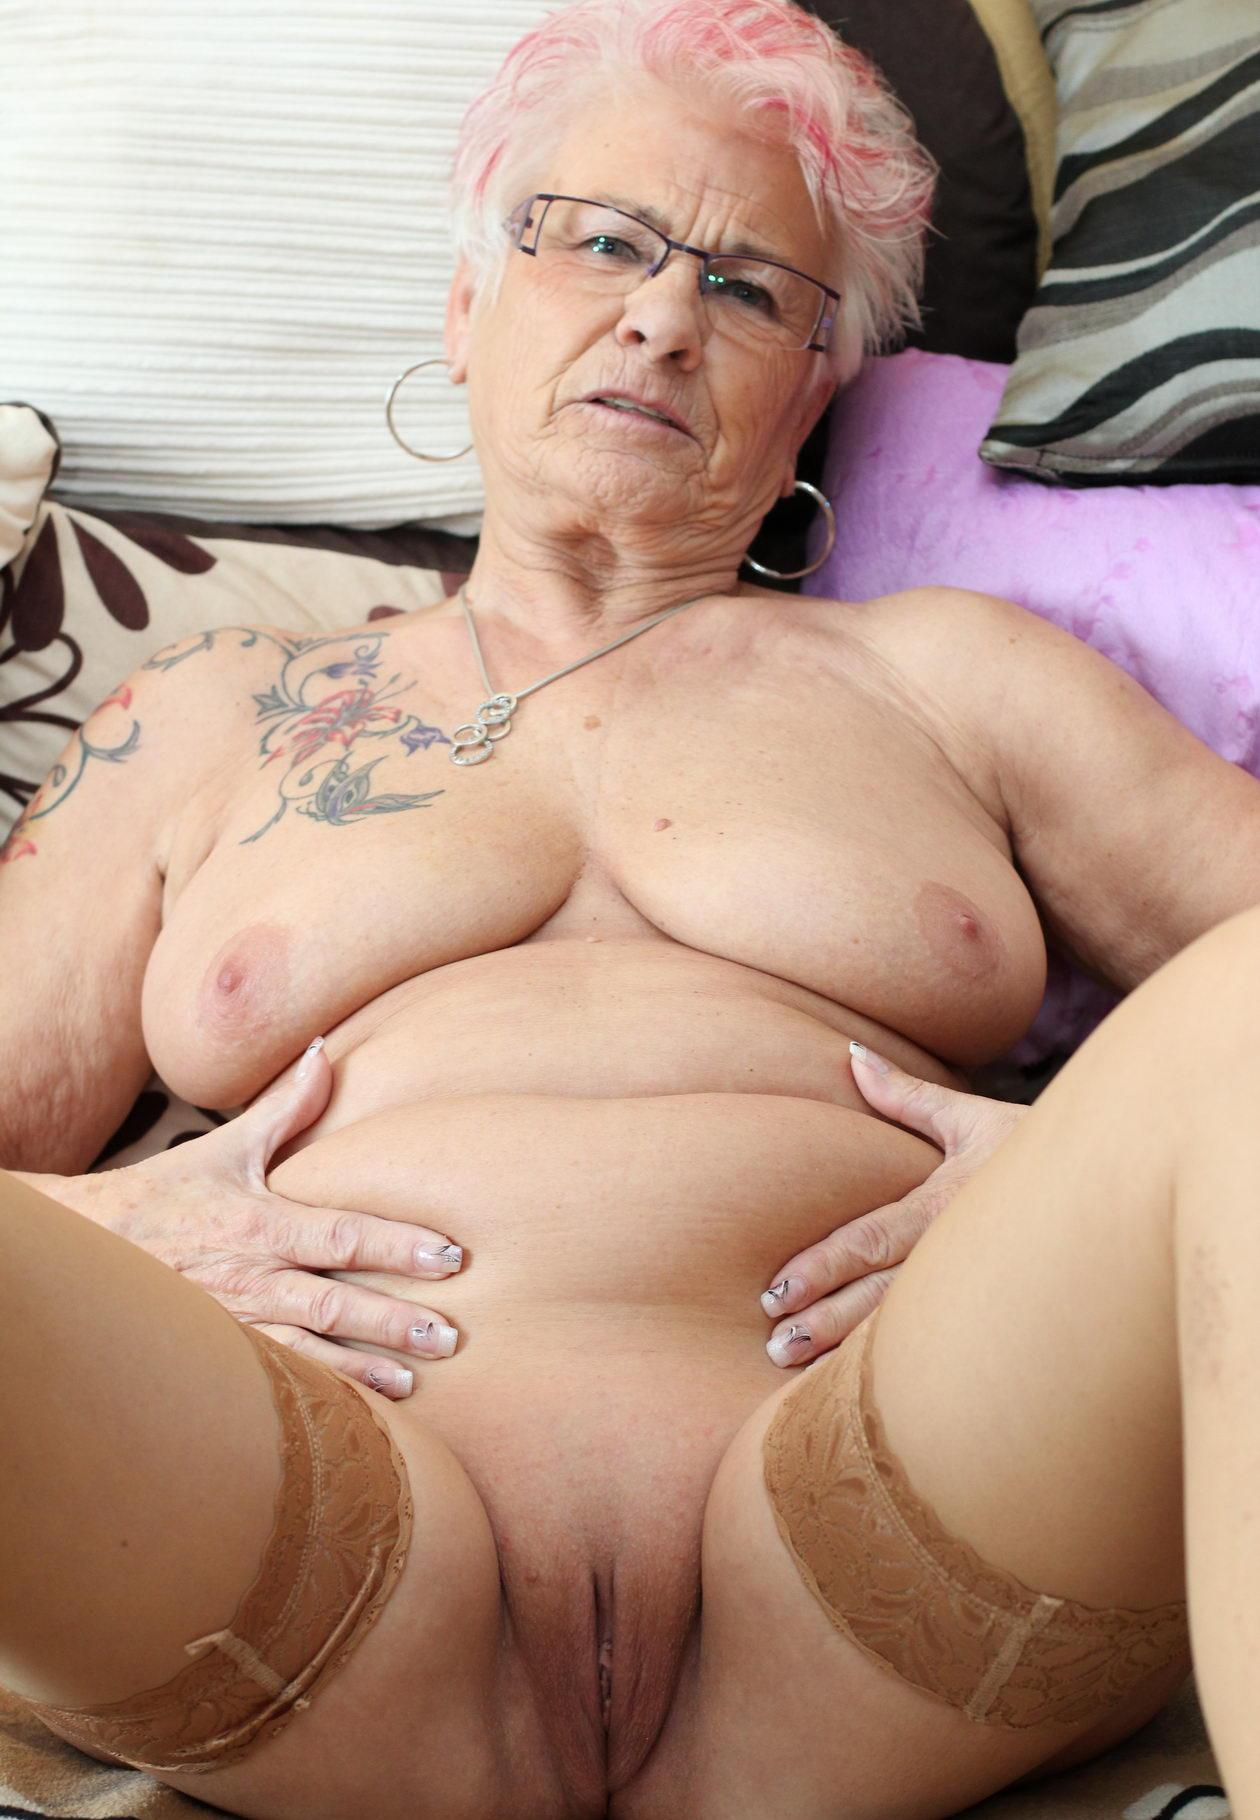 Lorena a anal addicted granny a slinky single oma ready to get fucked